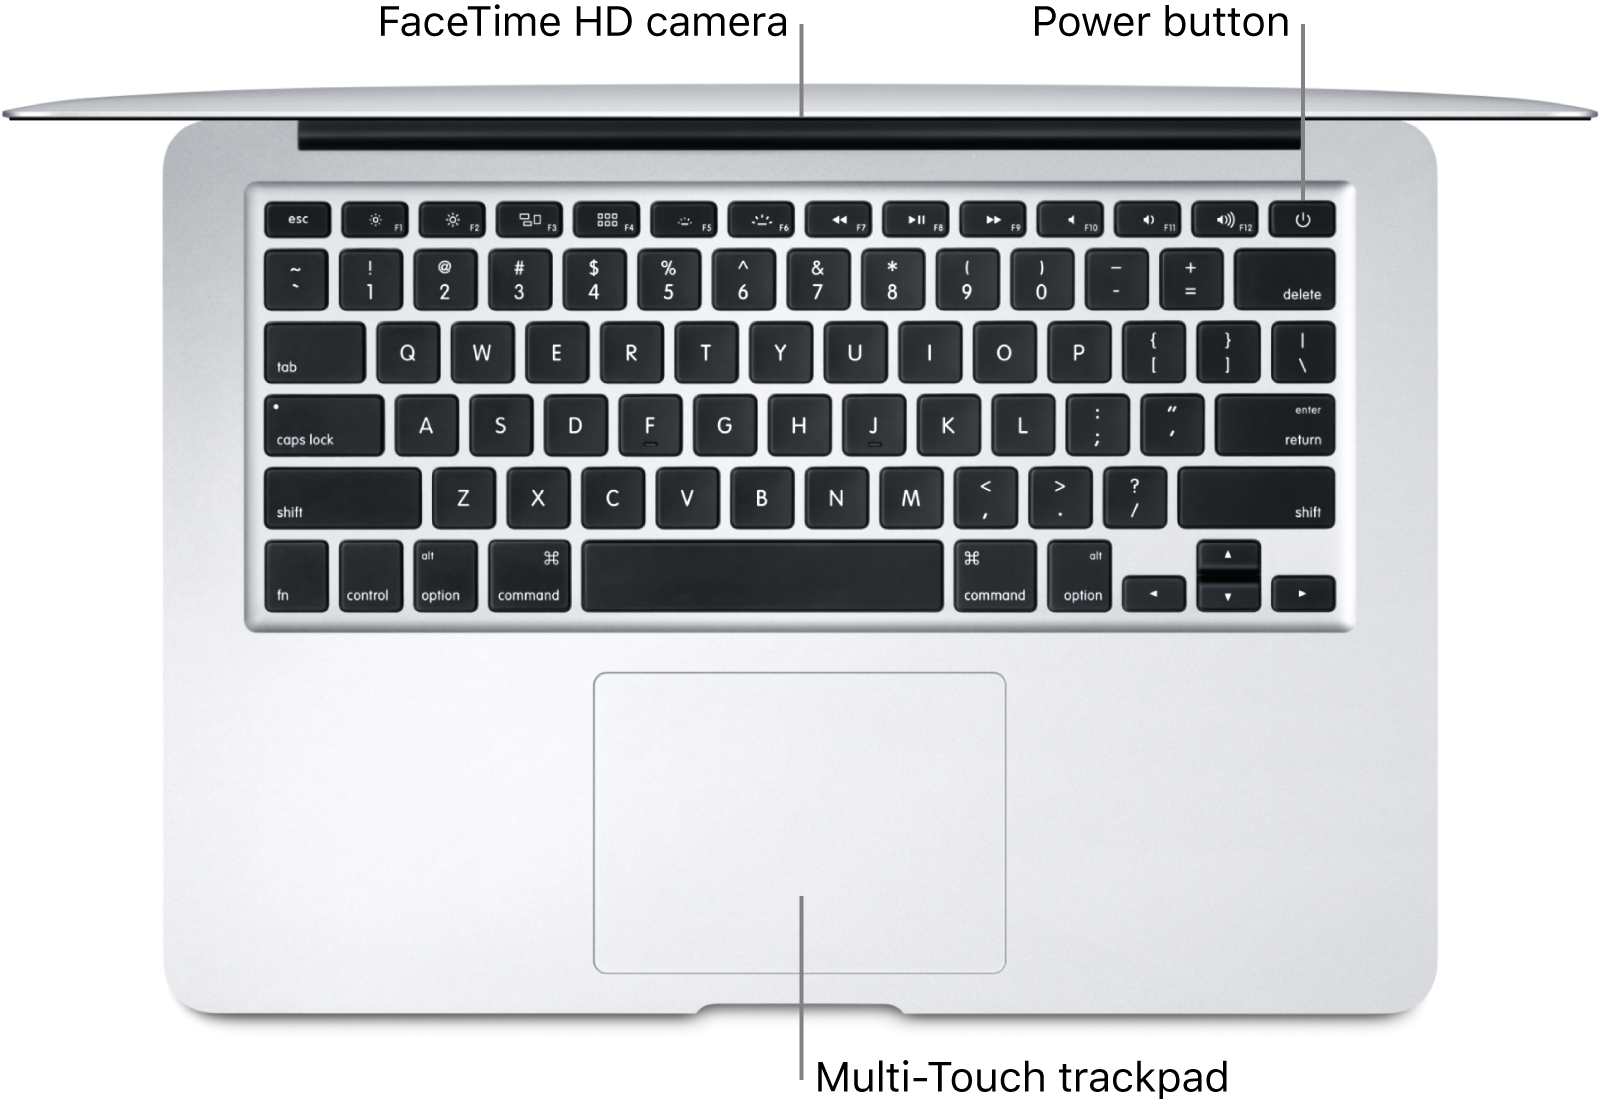 Looking down on an open MacBook Air, with callouts to the FaceTime HD camera, the power button, and the Multi-Touch trackpad.